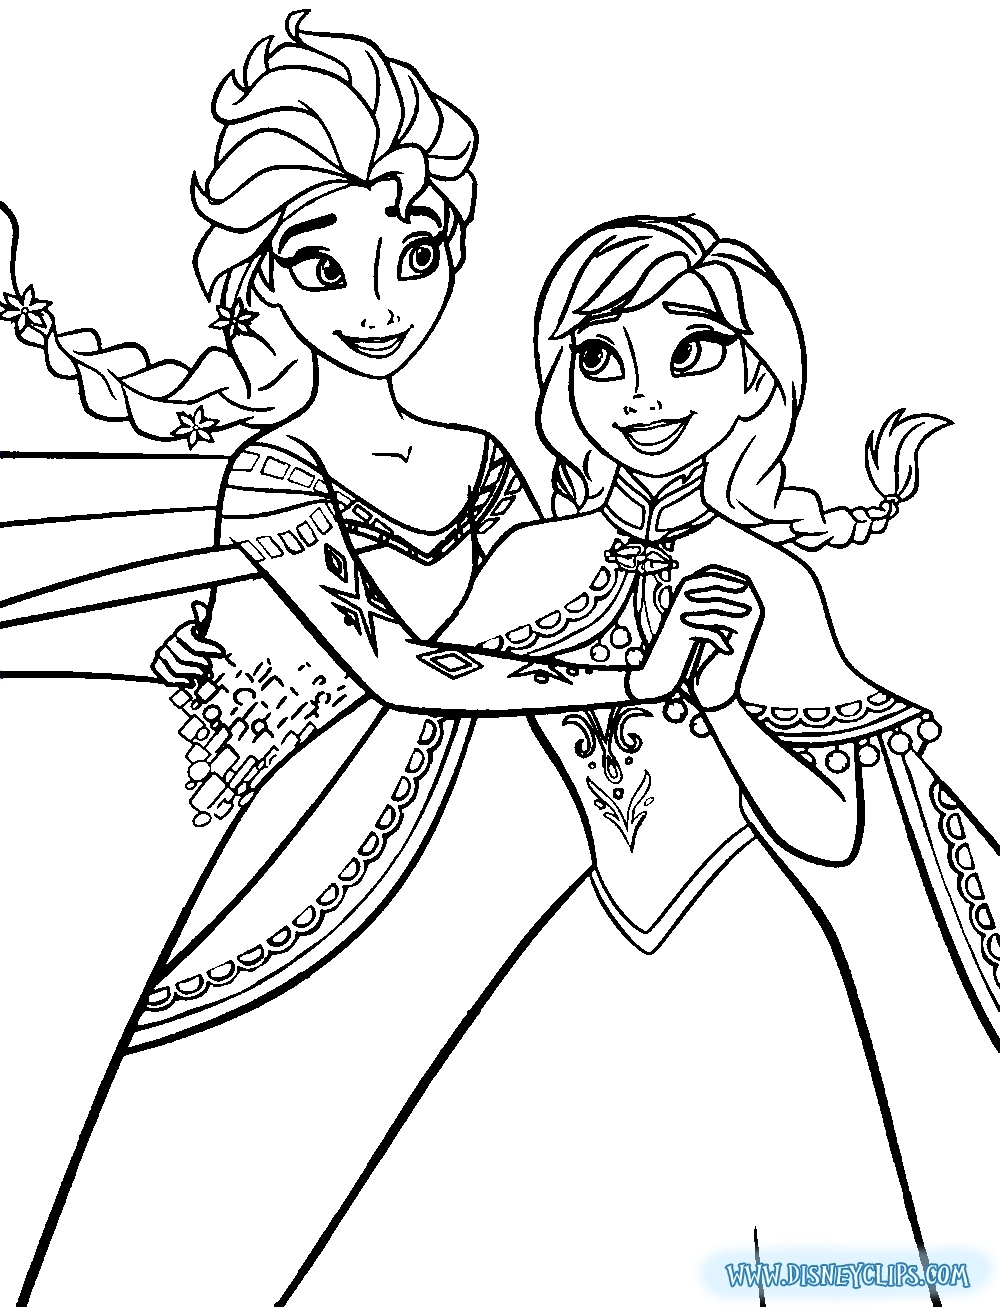 Elsa Coloring Pages Free Printable At Getdrawings Free Download